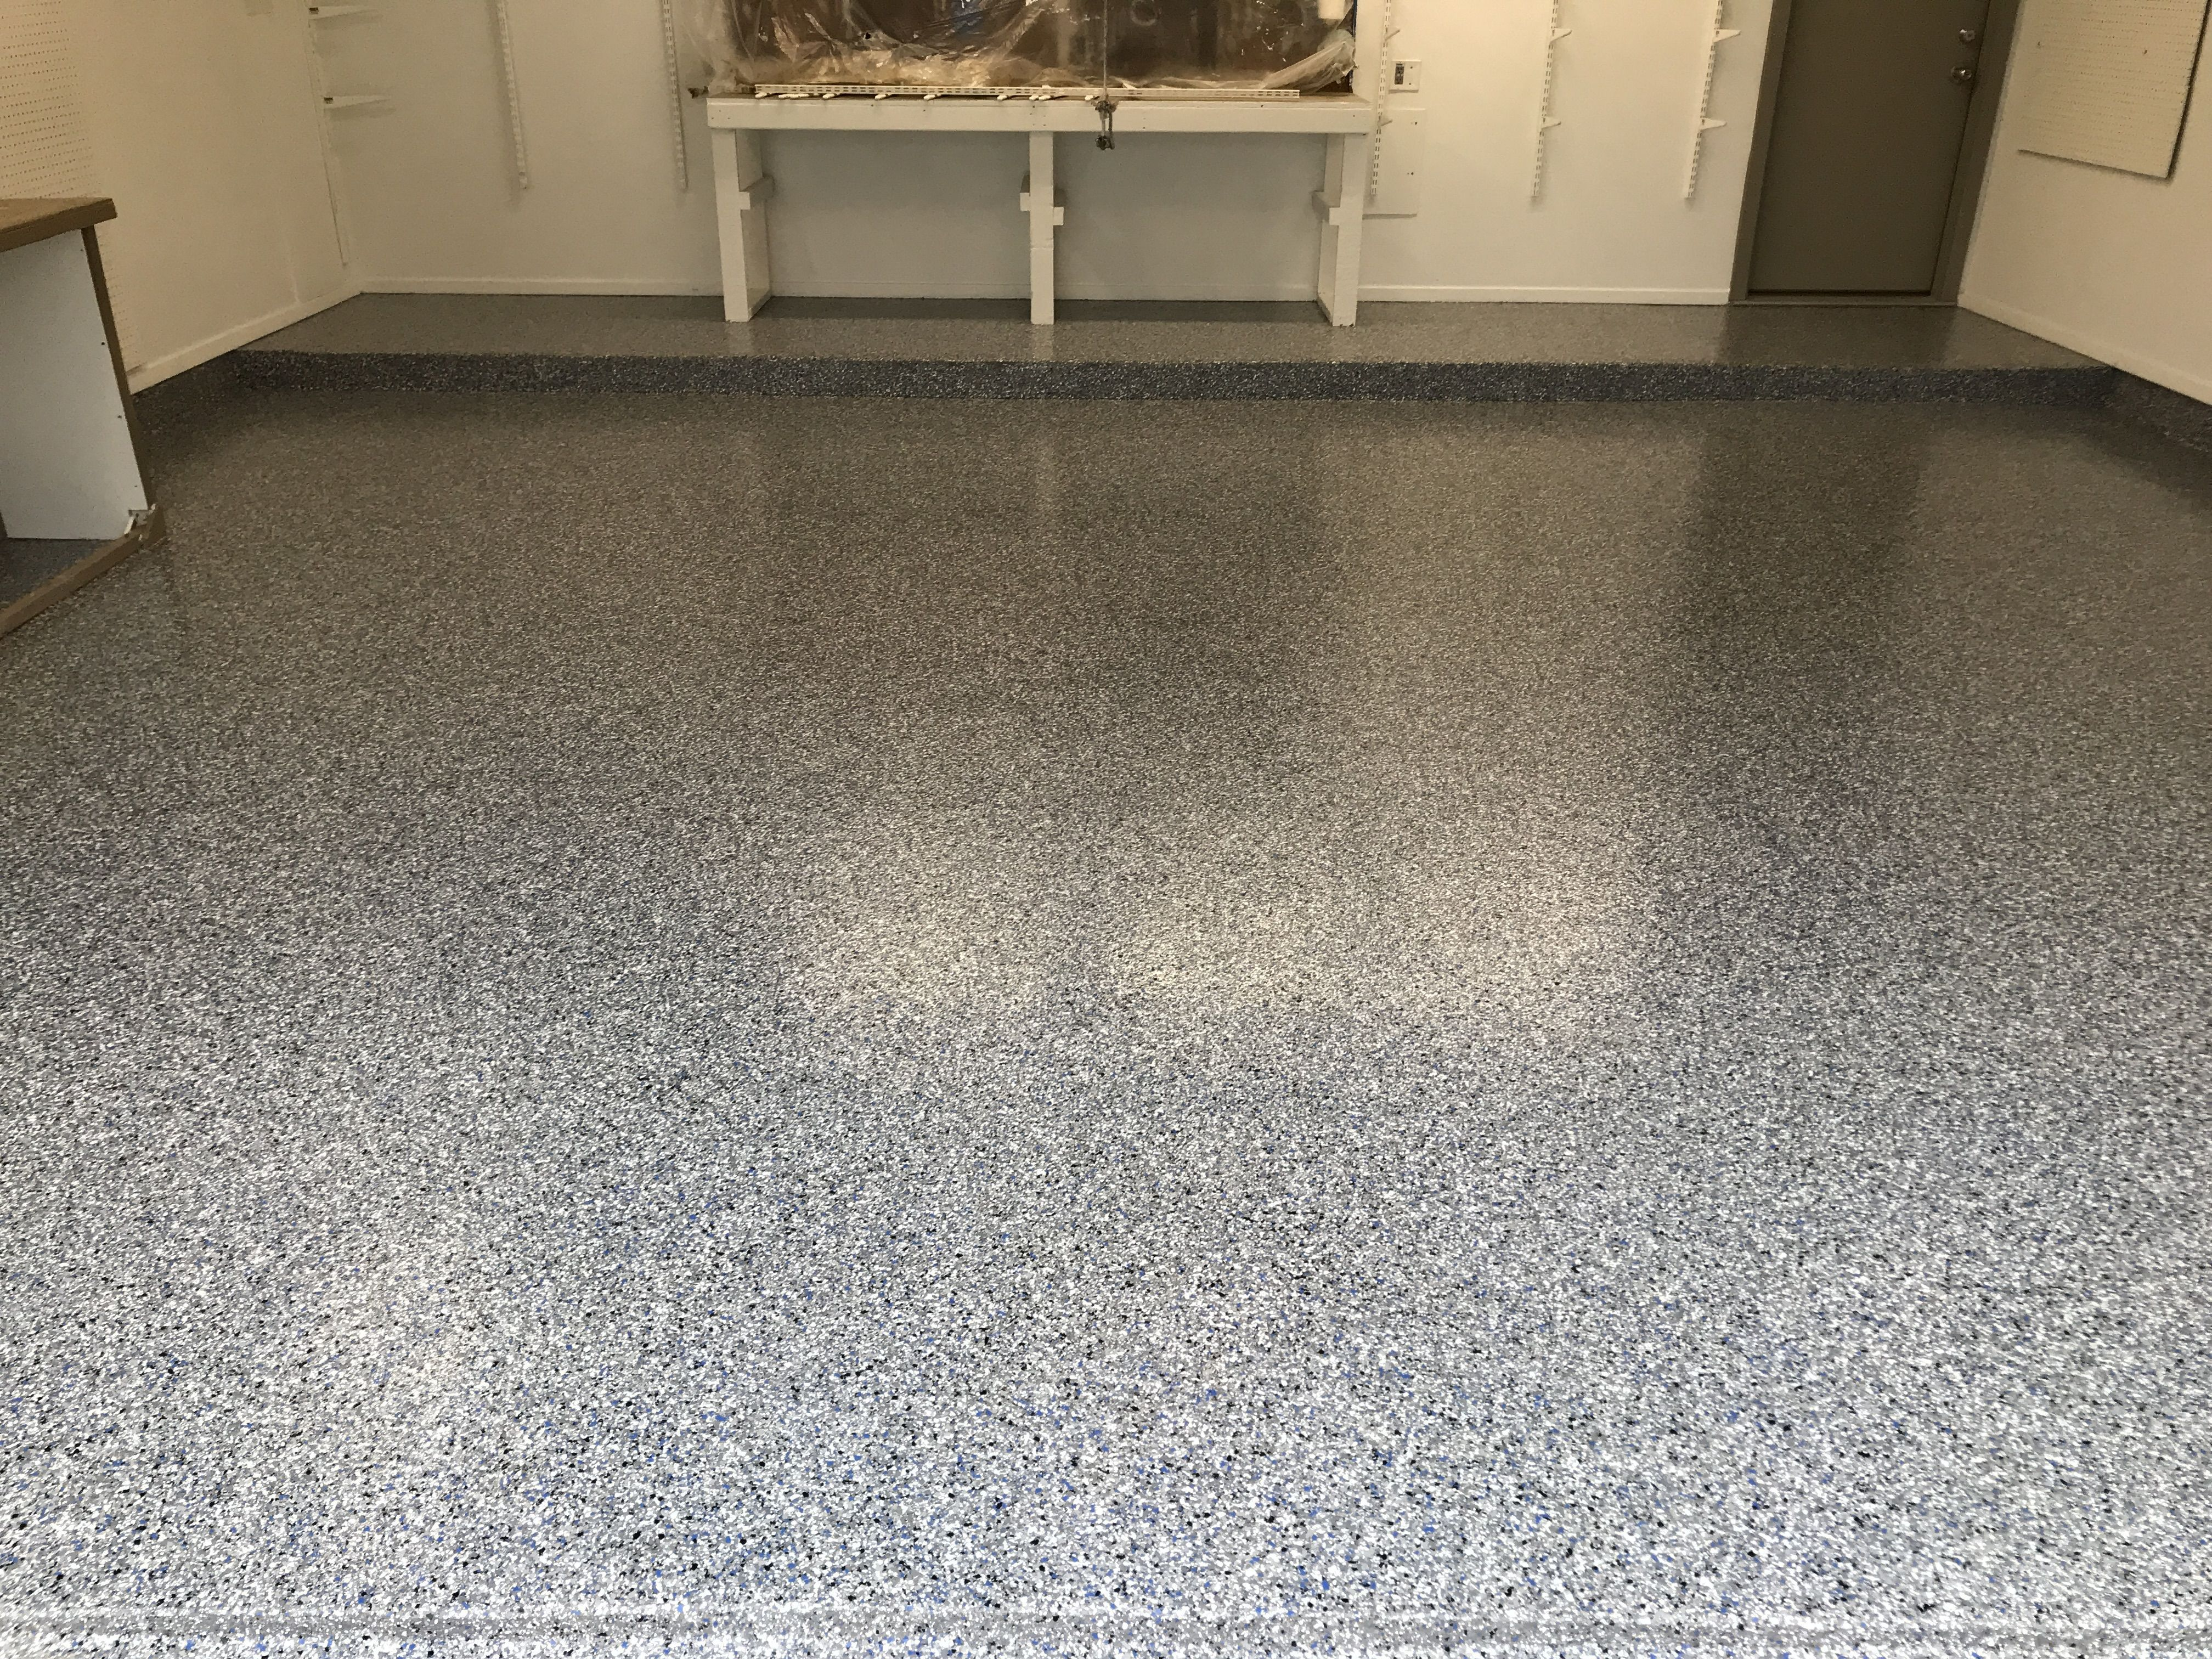 This Floor Had An Existing Coating It Was Removed And Replaced With The Classic Finish In Silver S Garage Floor Flooring Contractor Epoxy Garage Floor Coating